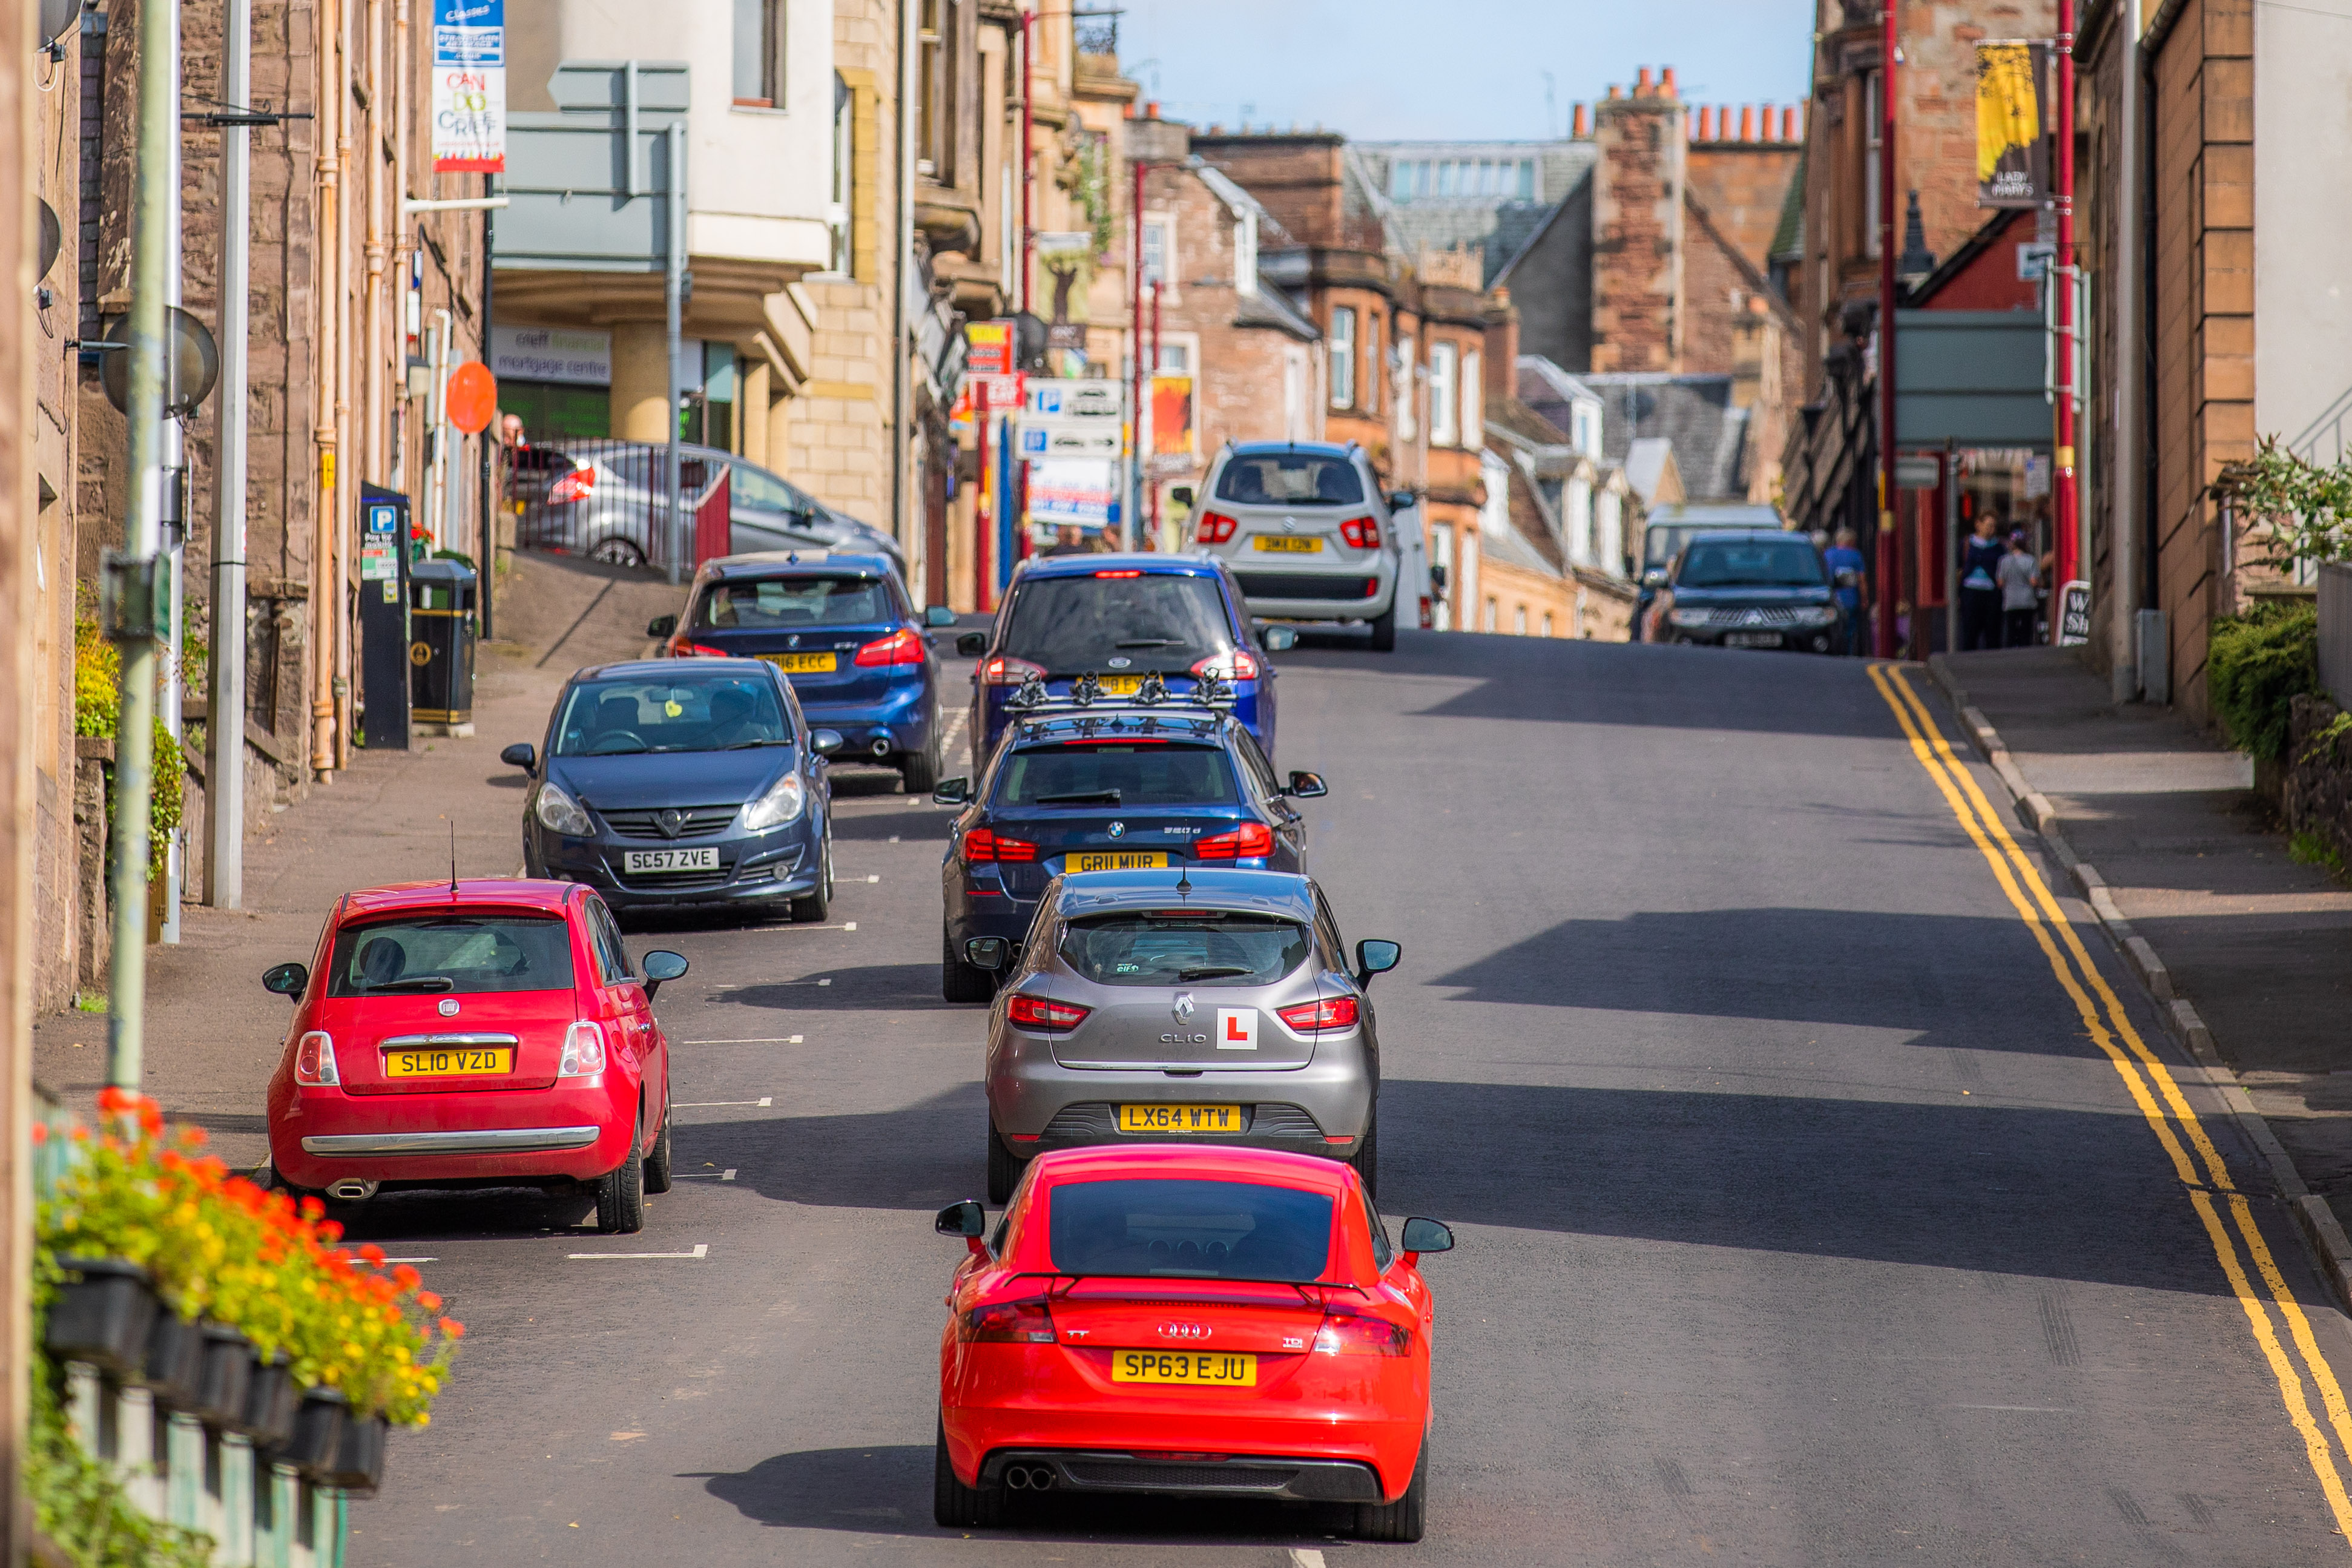 Traffic congestion on Lodge Street leading to High Street, Crieff.